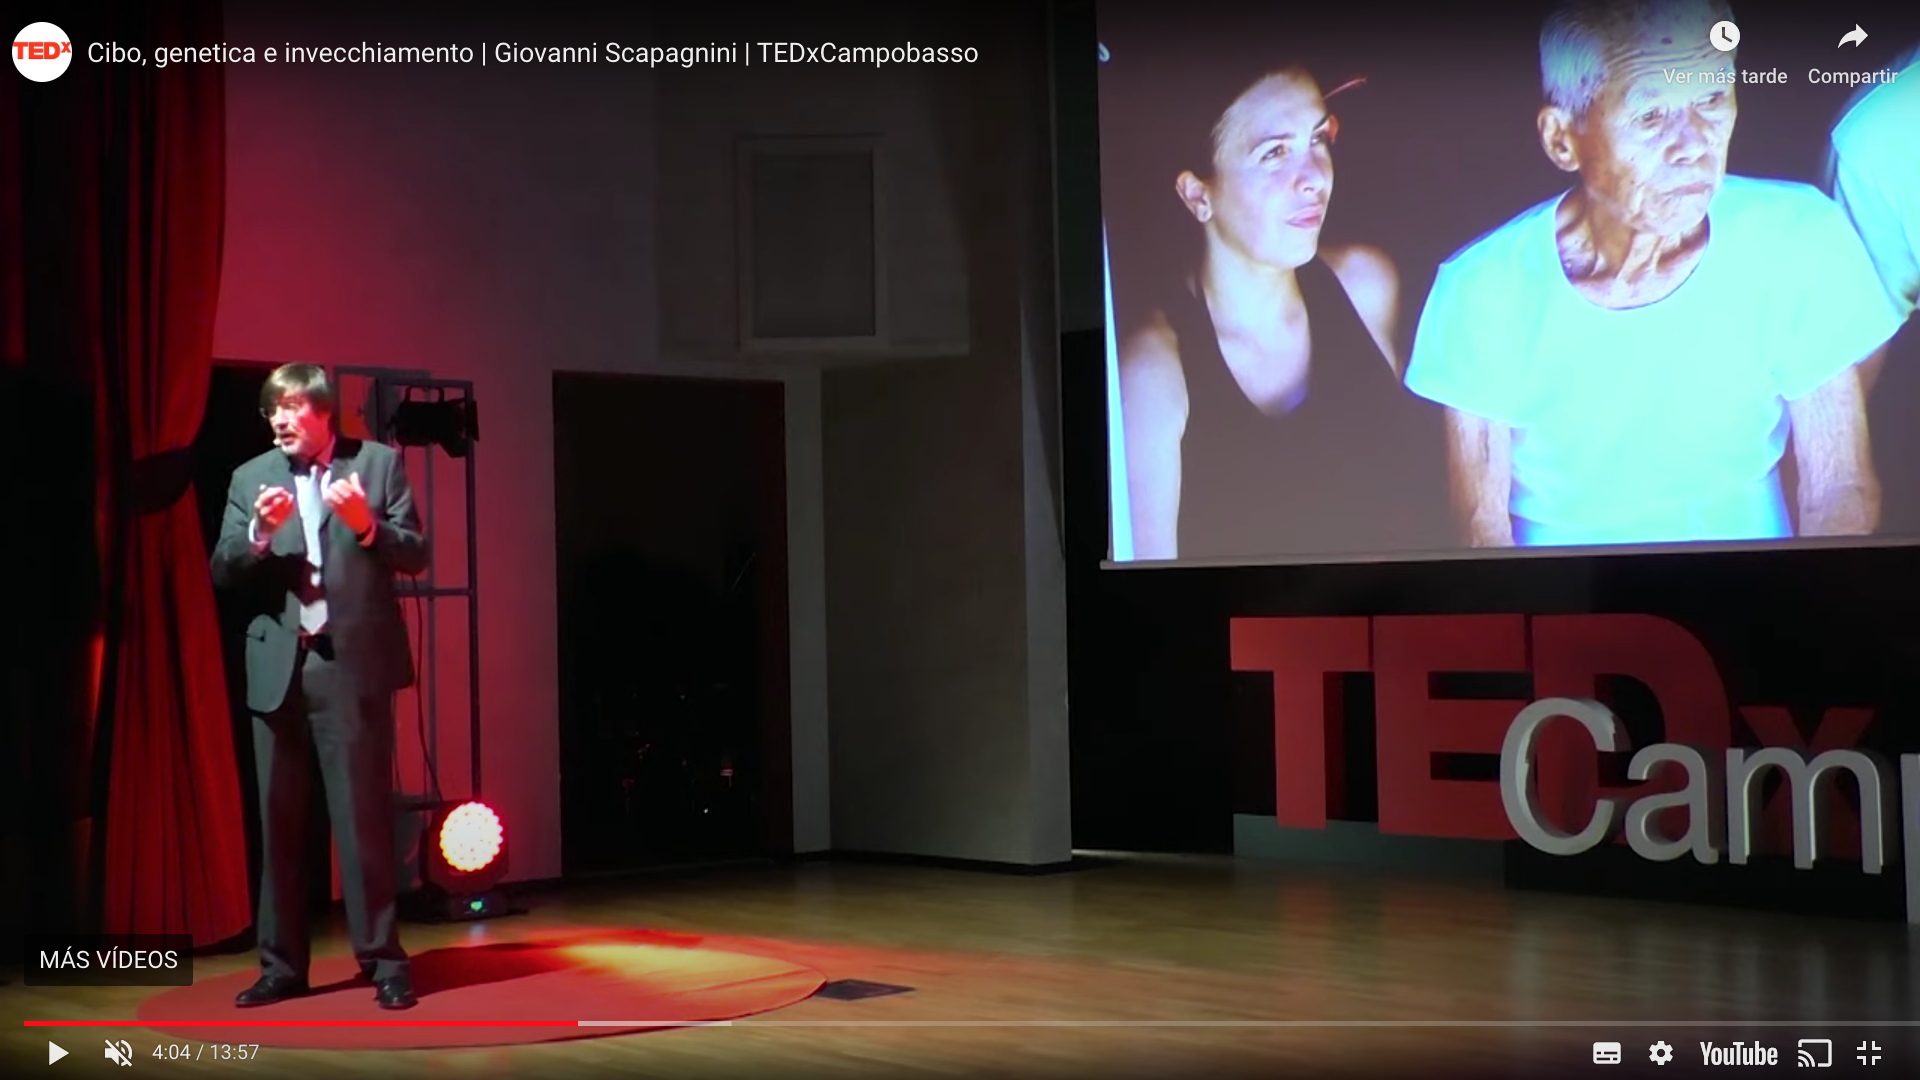 PROF. SCAPAGNINI OF ORGAIA SPEAKS AT TEDx ITALY ON HEALTHY LONGEVITY STRATEGIES.